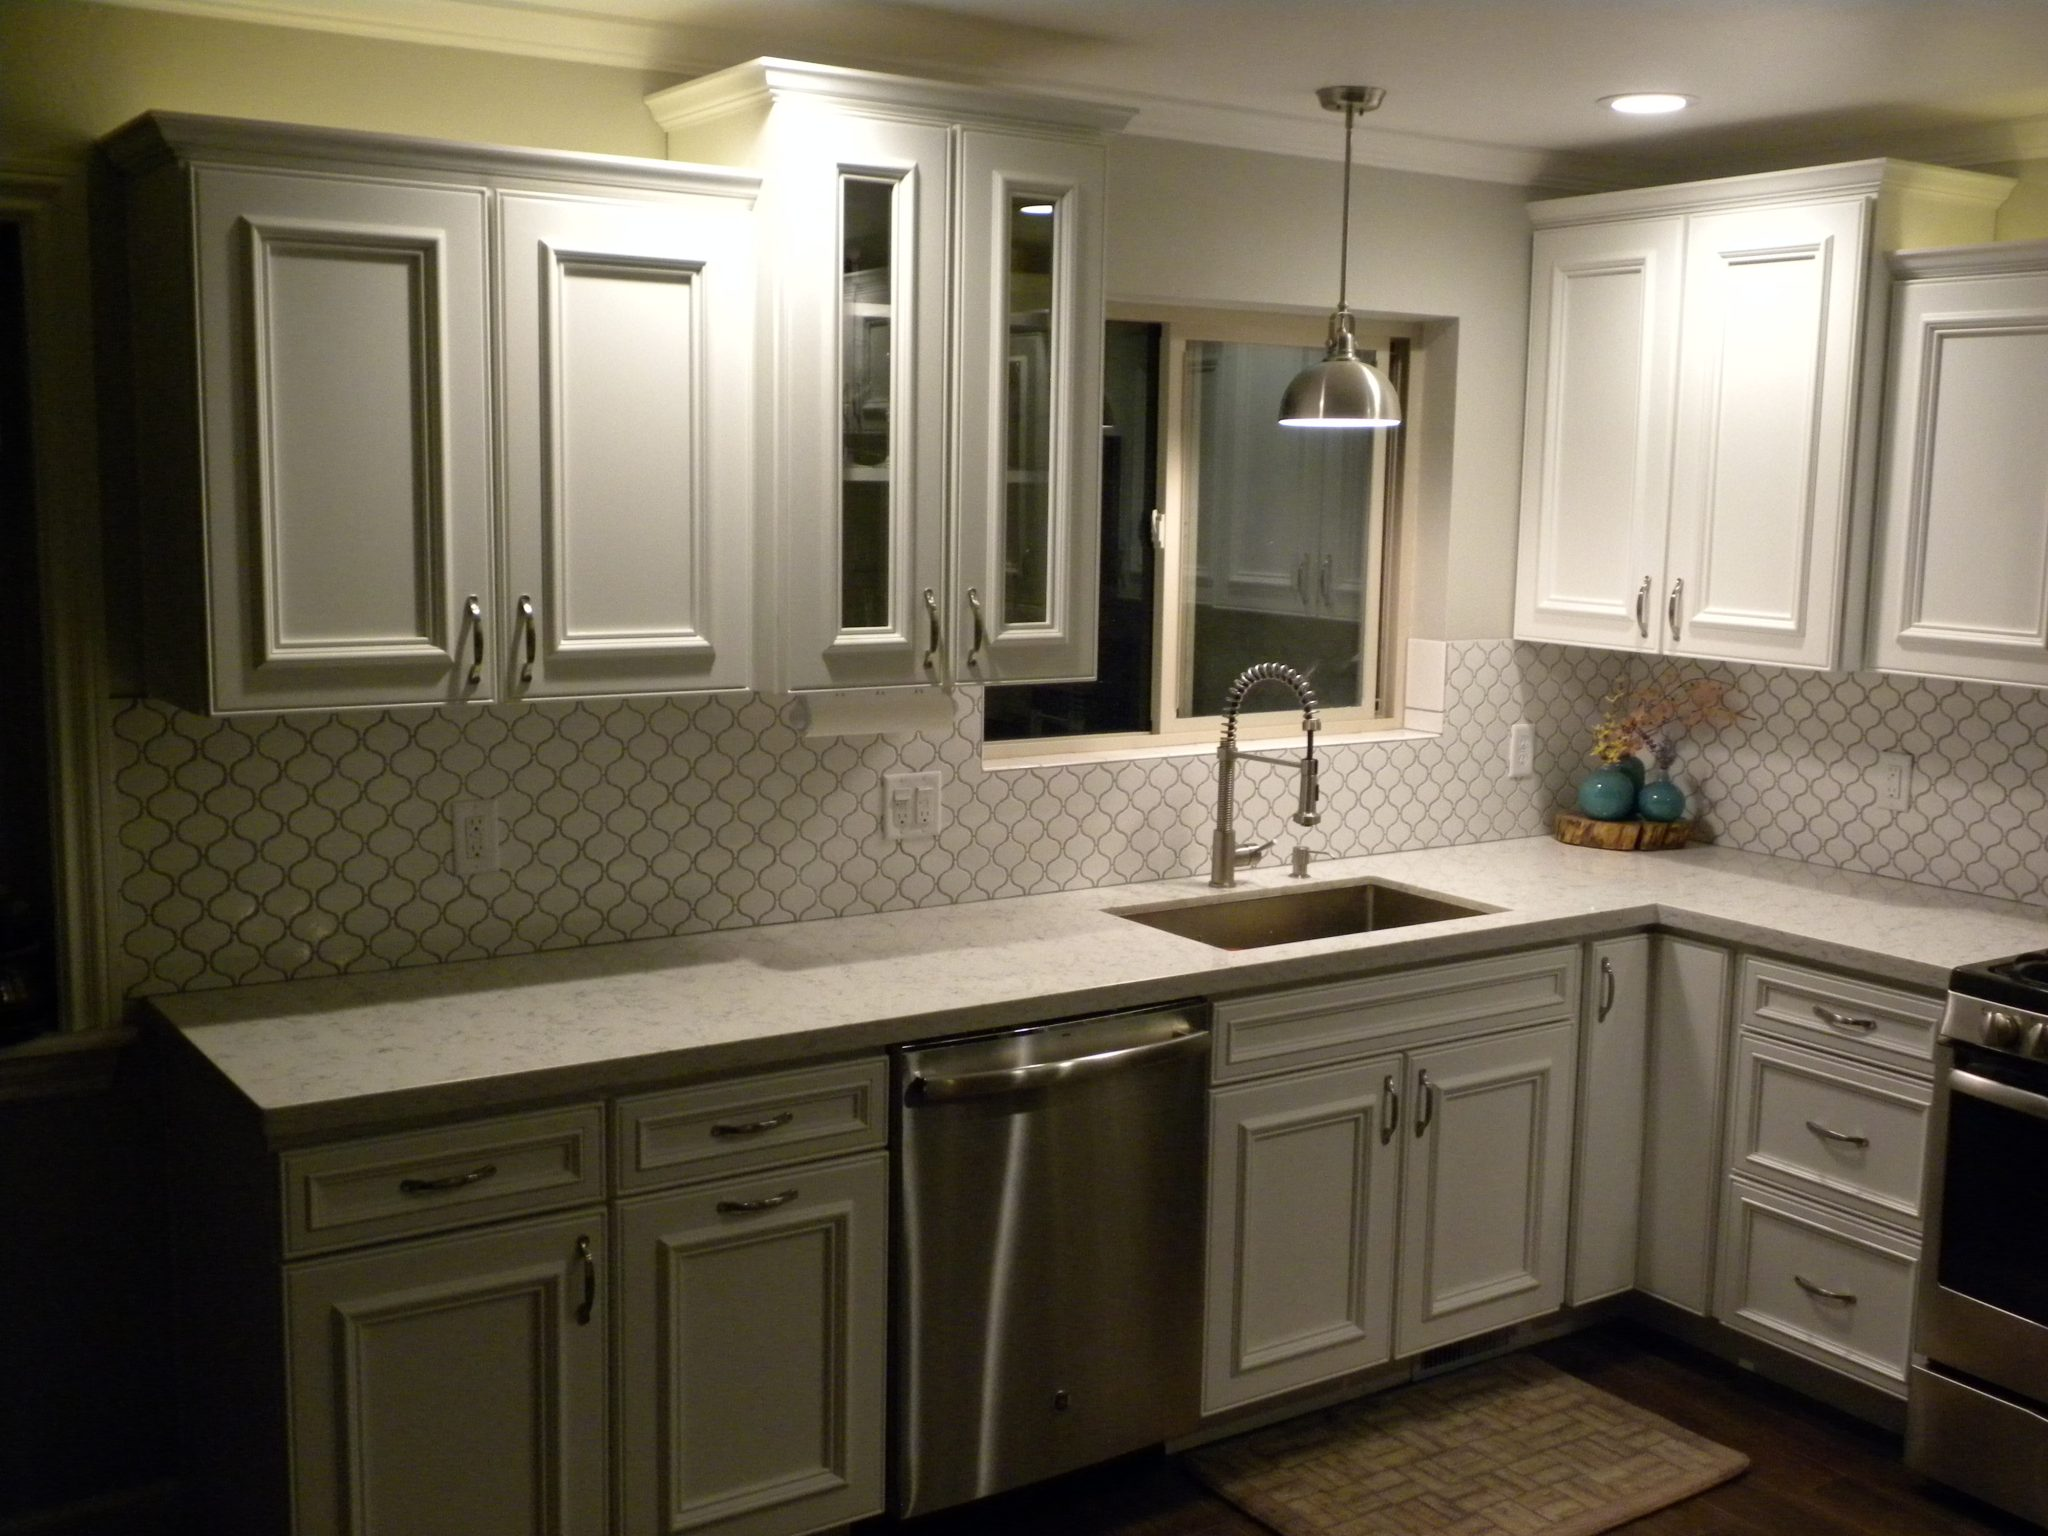 Remodeled kitchen with white granite countertops and white wooden cabinets and white trim